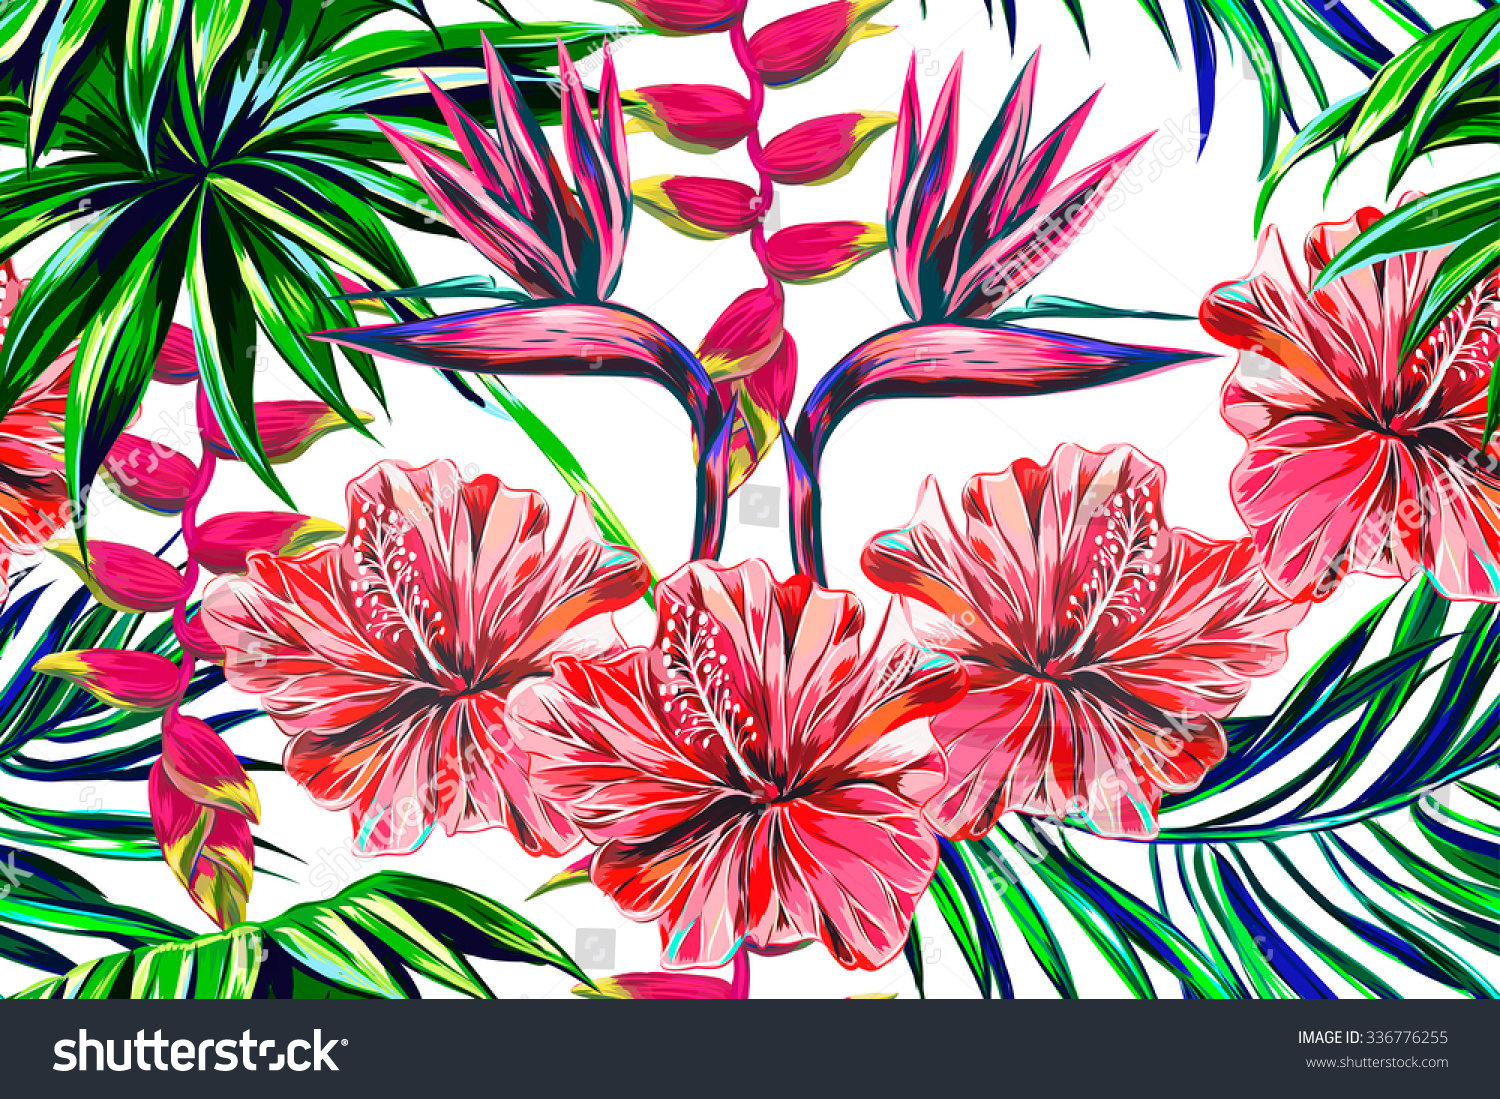 Beautiful Seamless Vector Floral Jungle Pattern Stock Vector ...